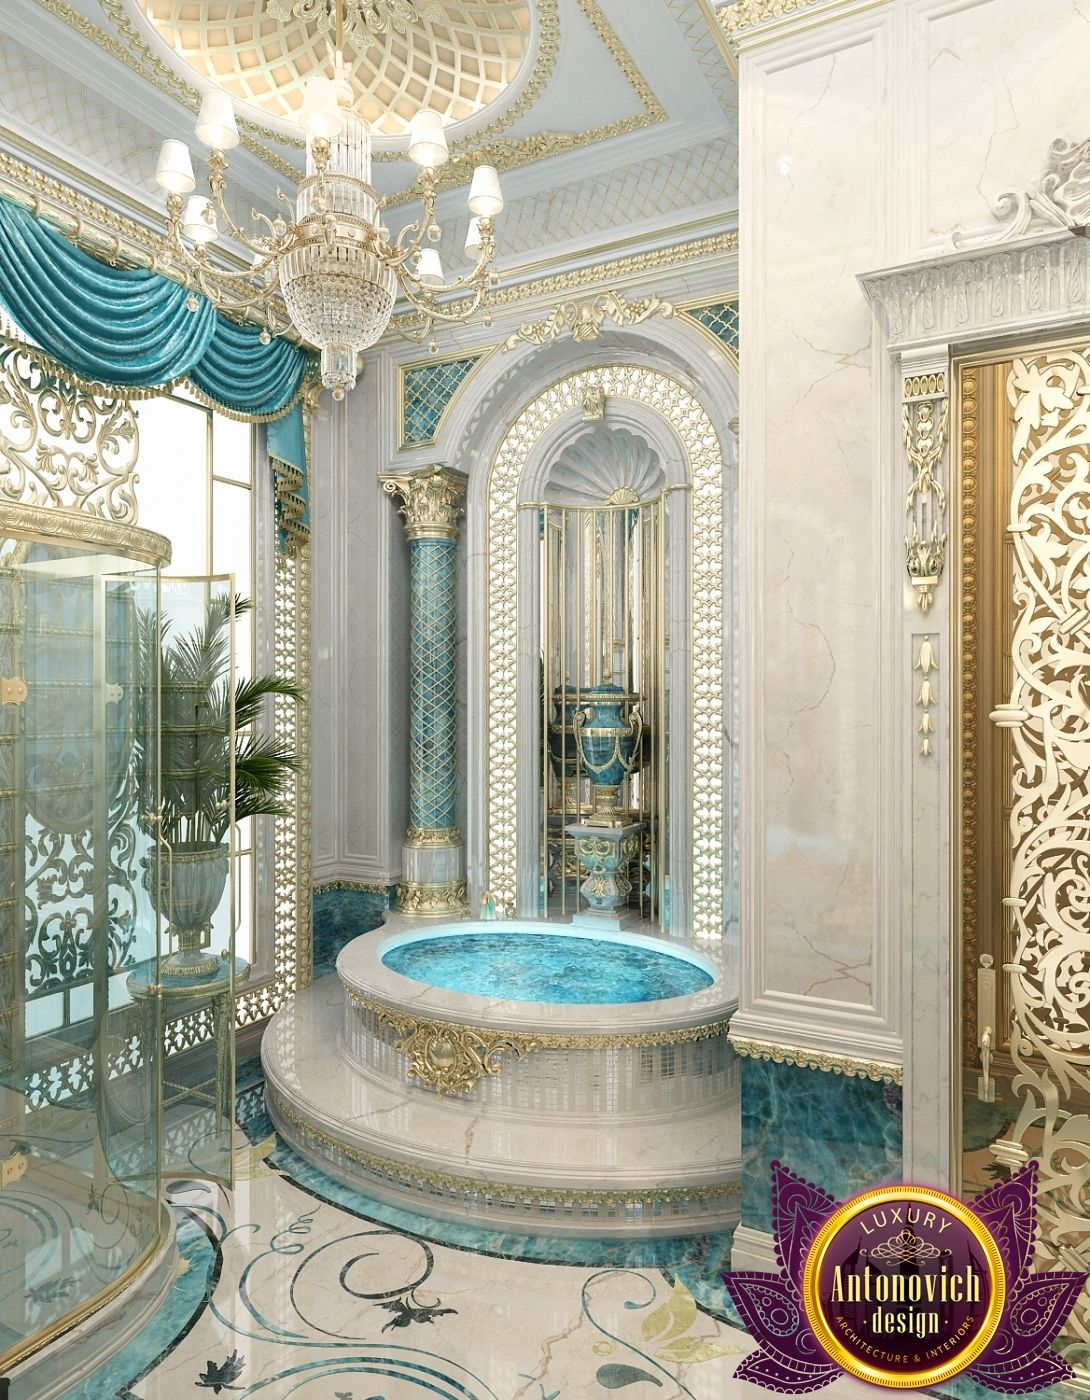 Bathroom design in dubai the best interior design for Bathroom designs dubai